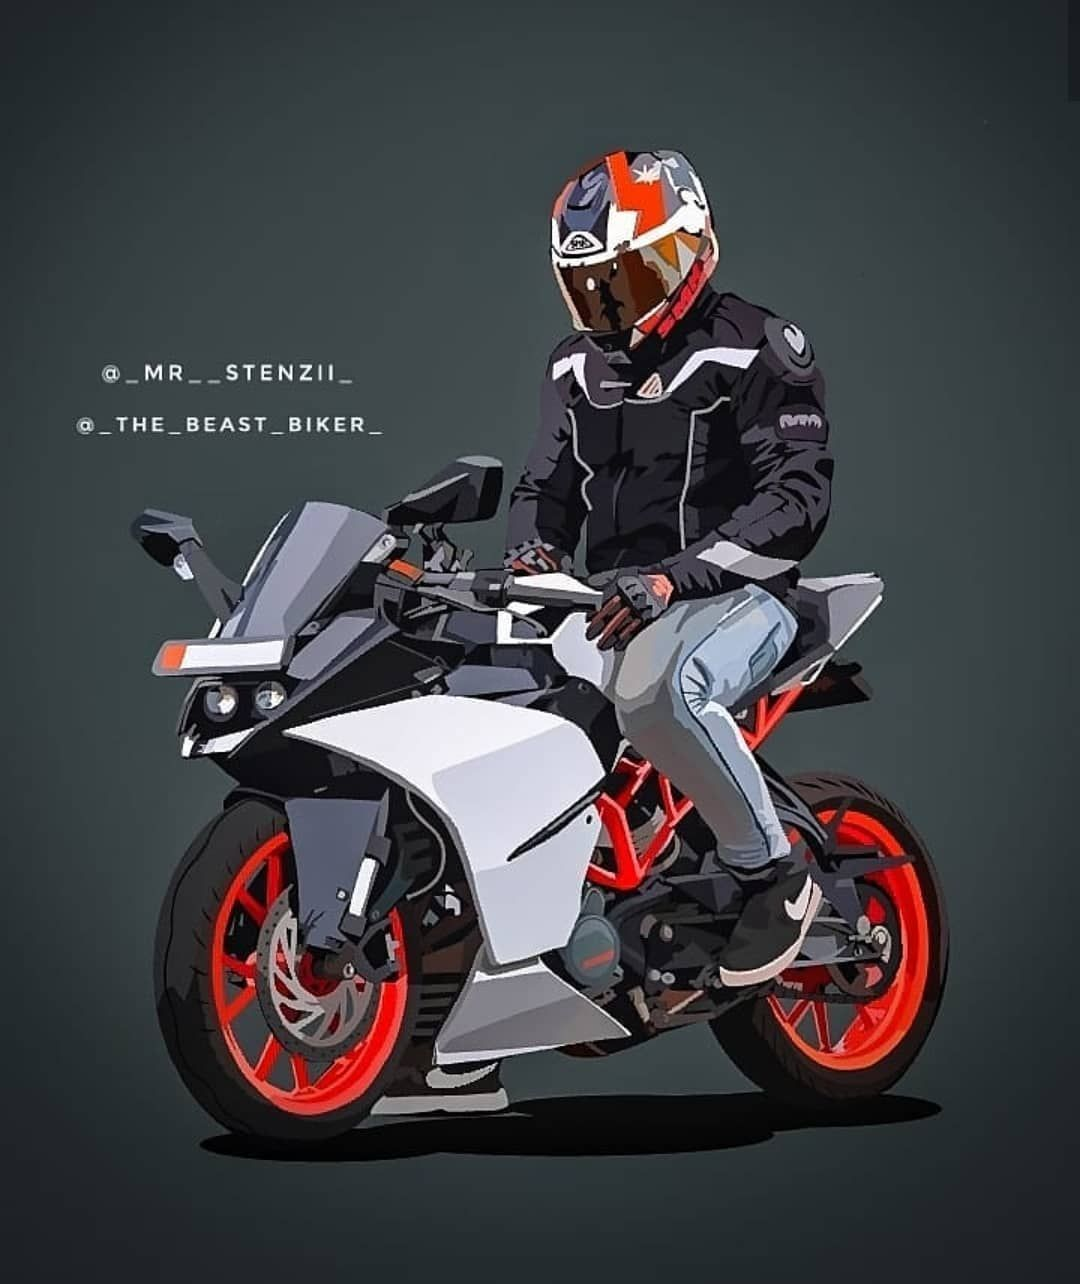 Ktm Rc Wallpaper 1080x1284 Download Hd Wallpaper Wallpapertip